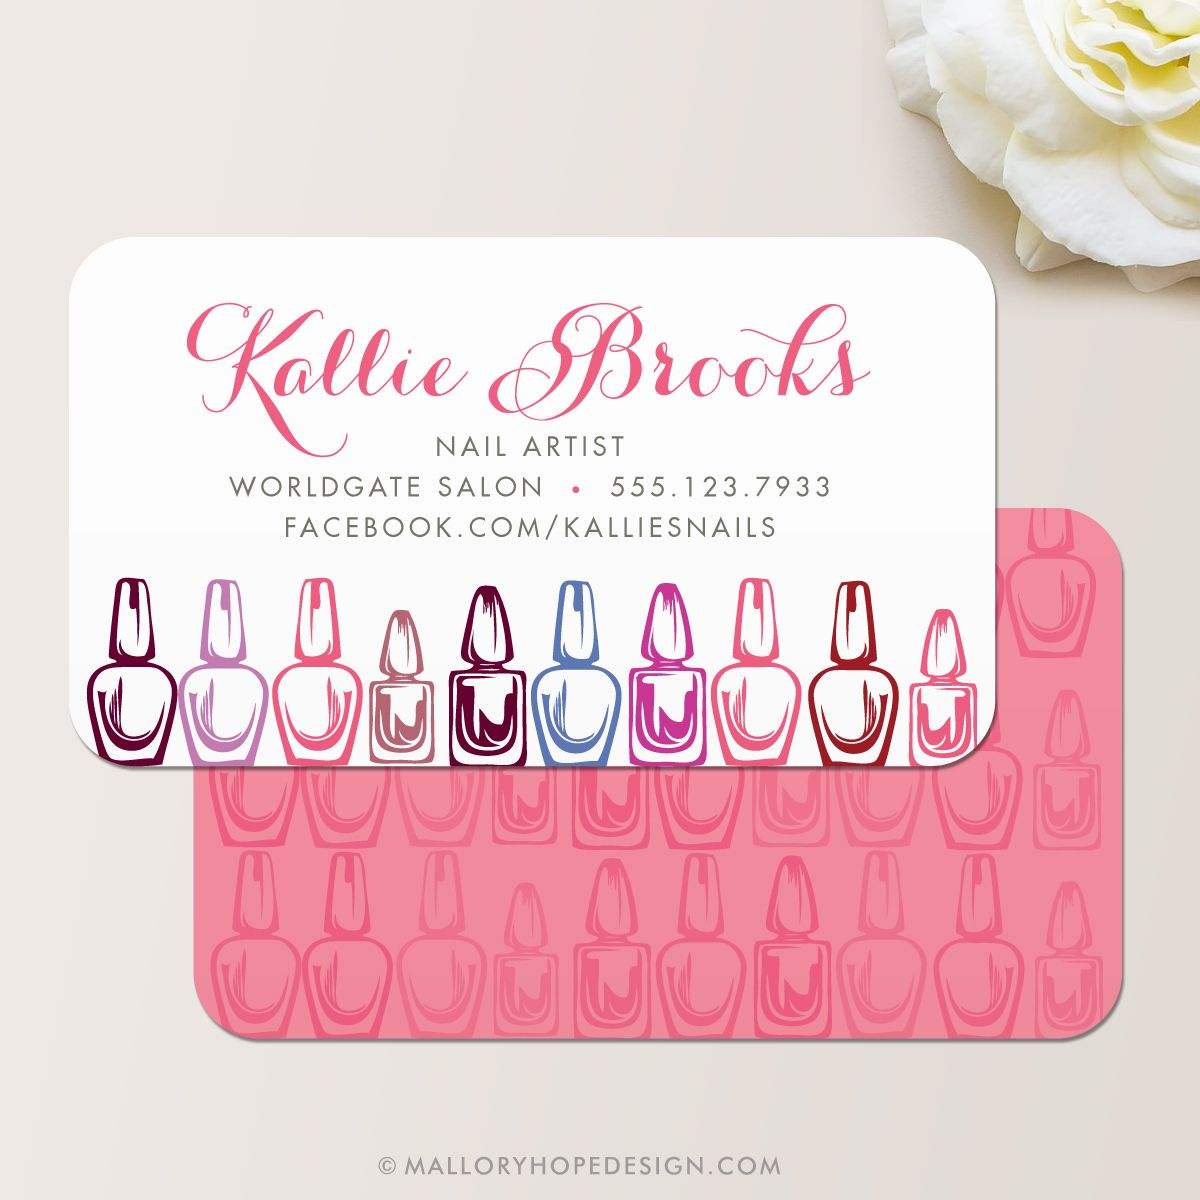 Nail Artist Business Card | Calling cards, Nail salons and Business ...